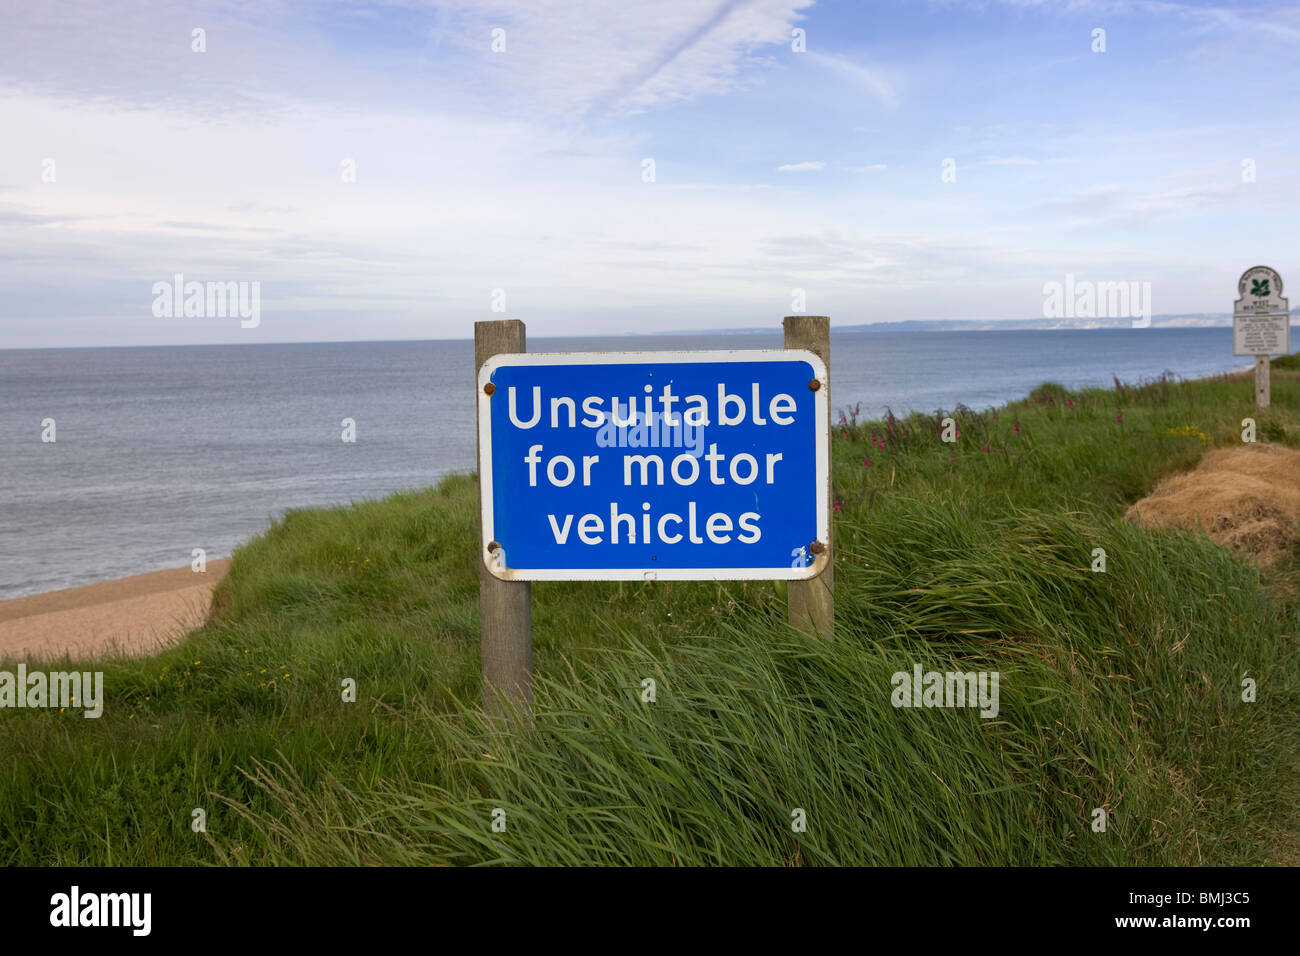 Road sign unsuitable for motor vehicles at Chesil Beach in Dorset, UK - Stock Image